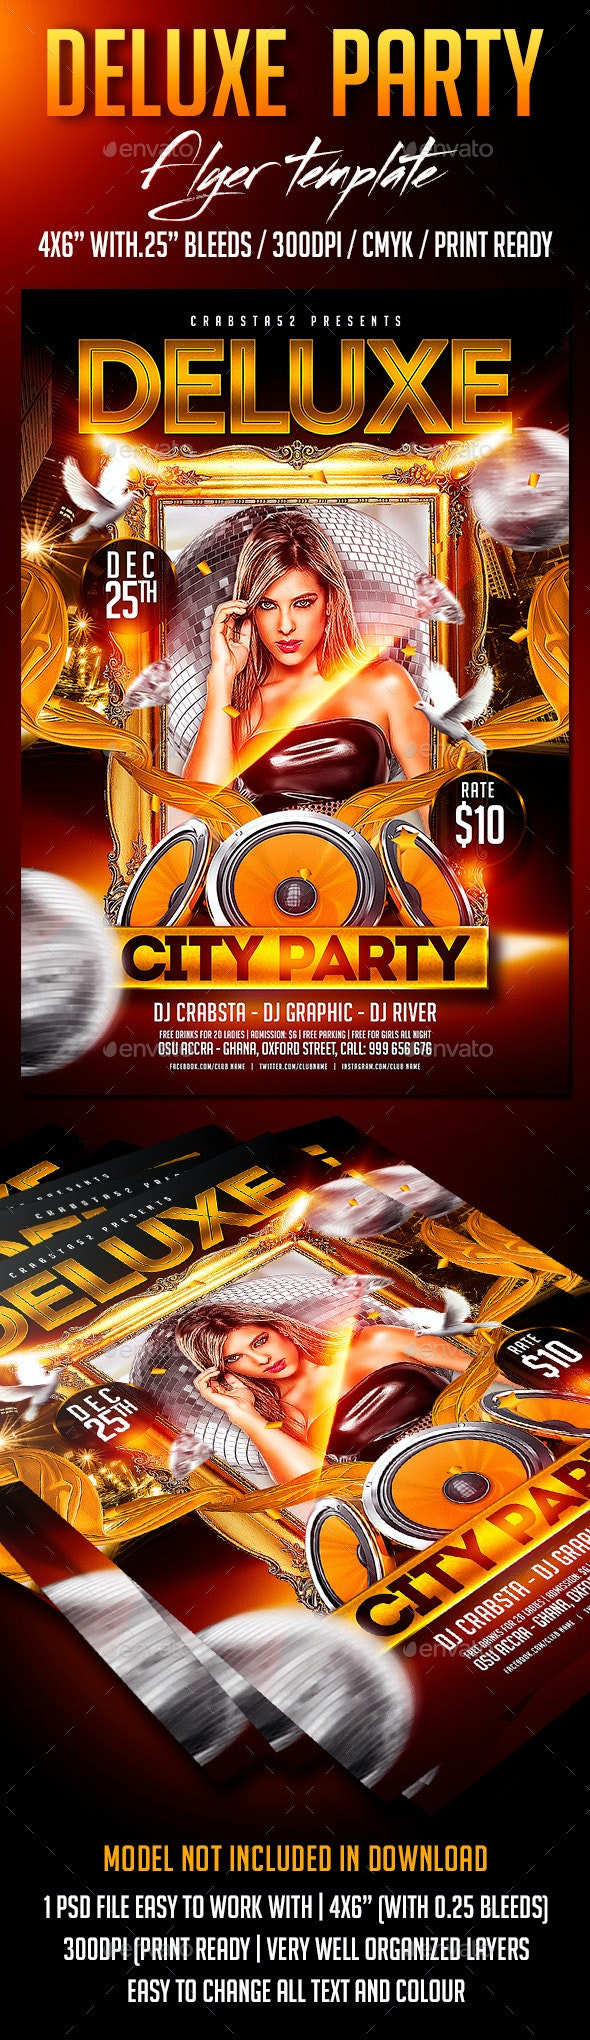 Deluxe Party Flyer Template - Clubs & Parties Events